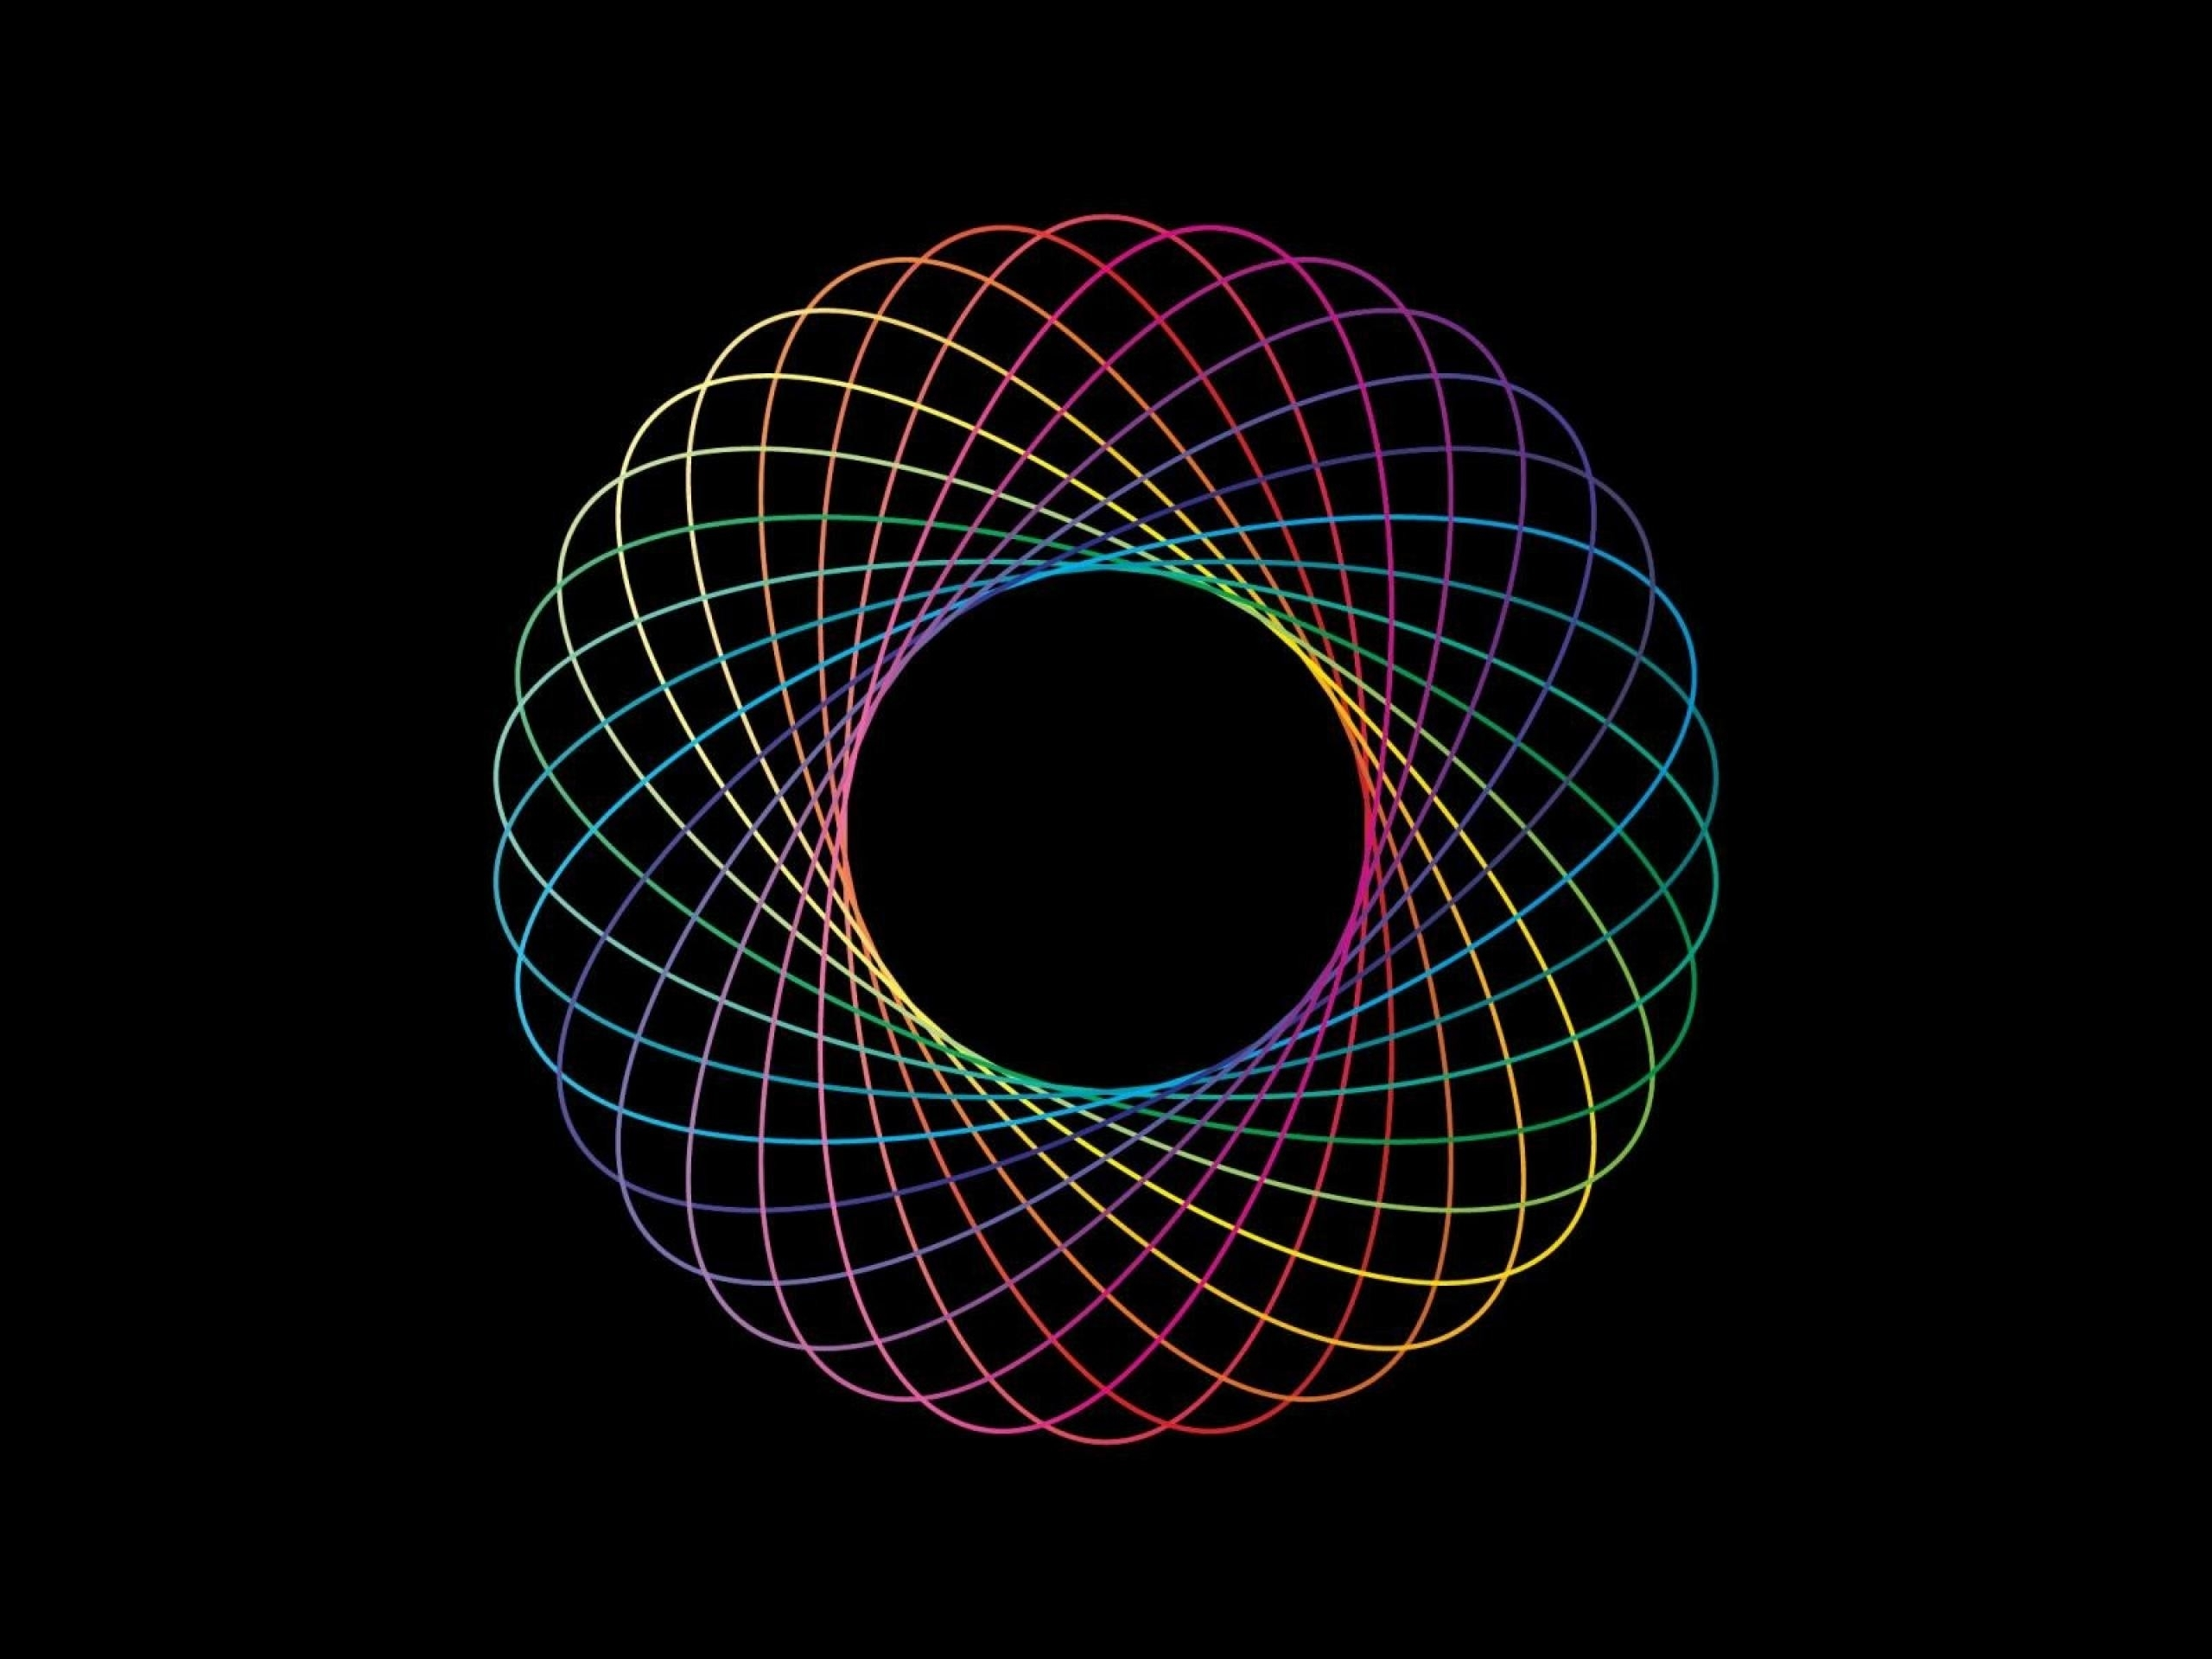 3d Animated Wallpaper For Mac Colorful Spirograph Abstract Wallpapers Colorful